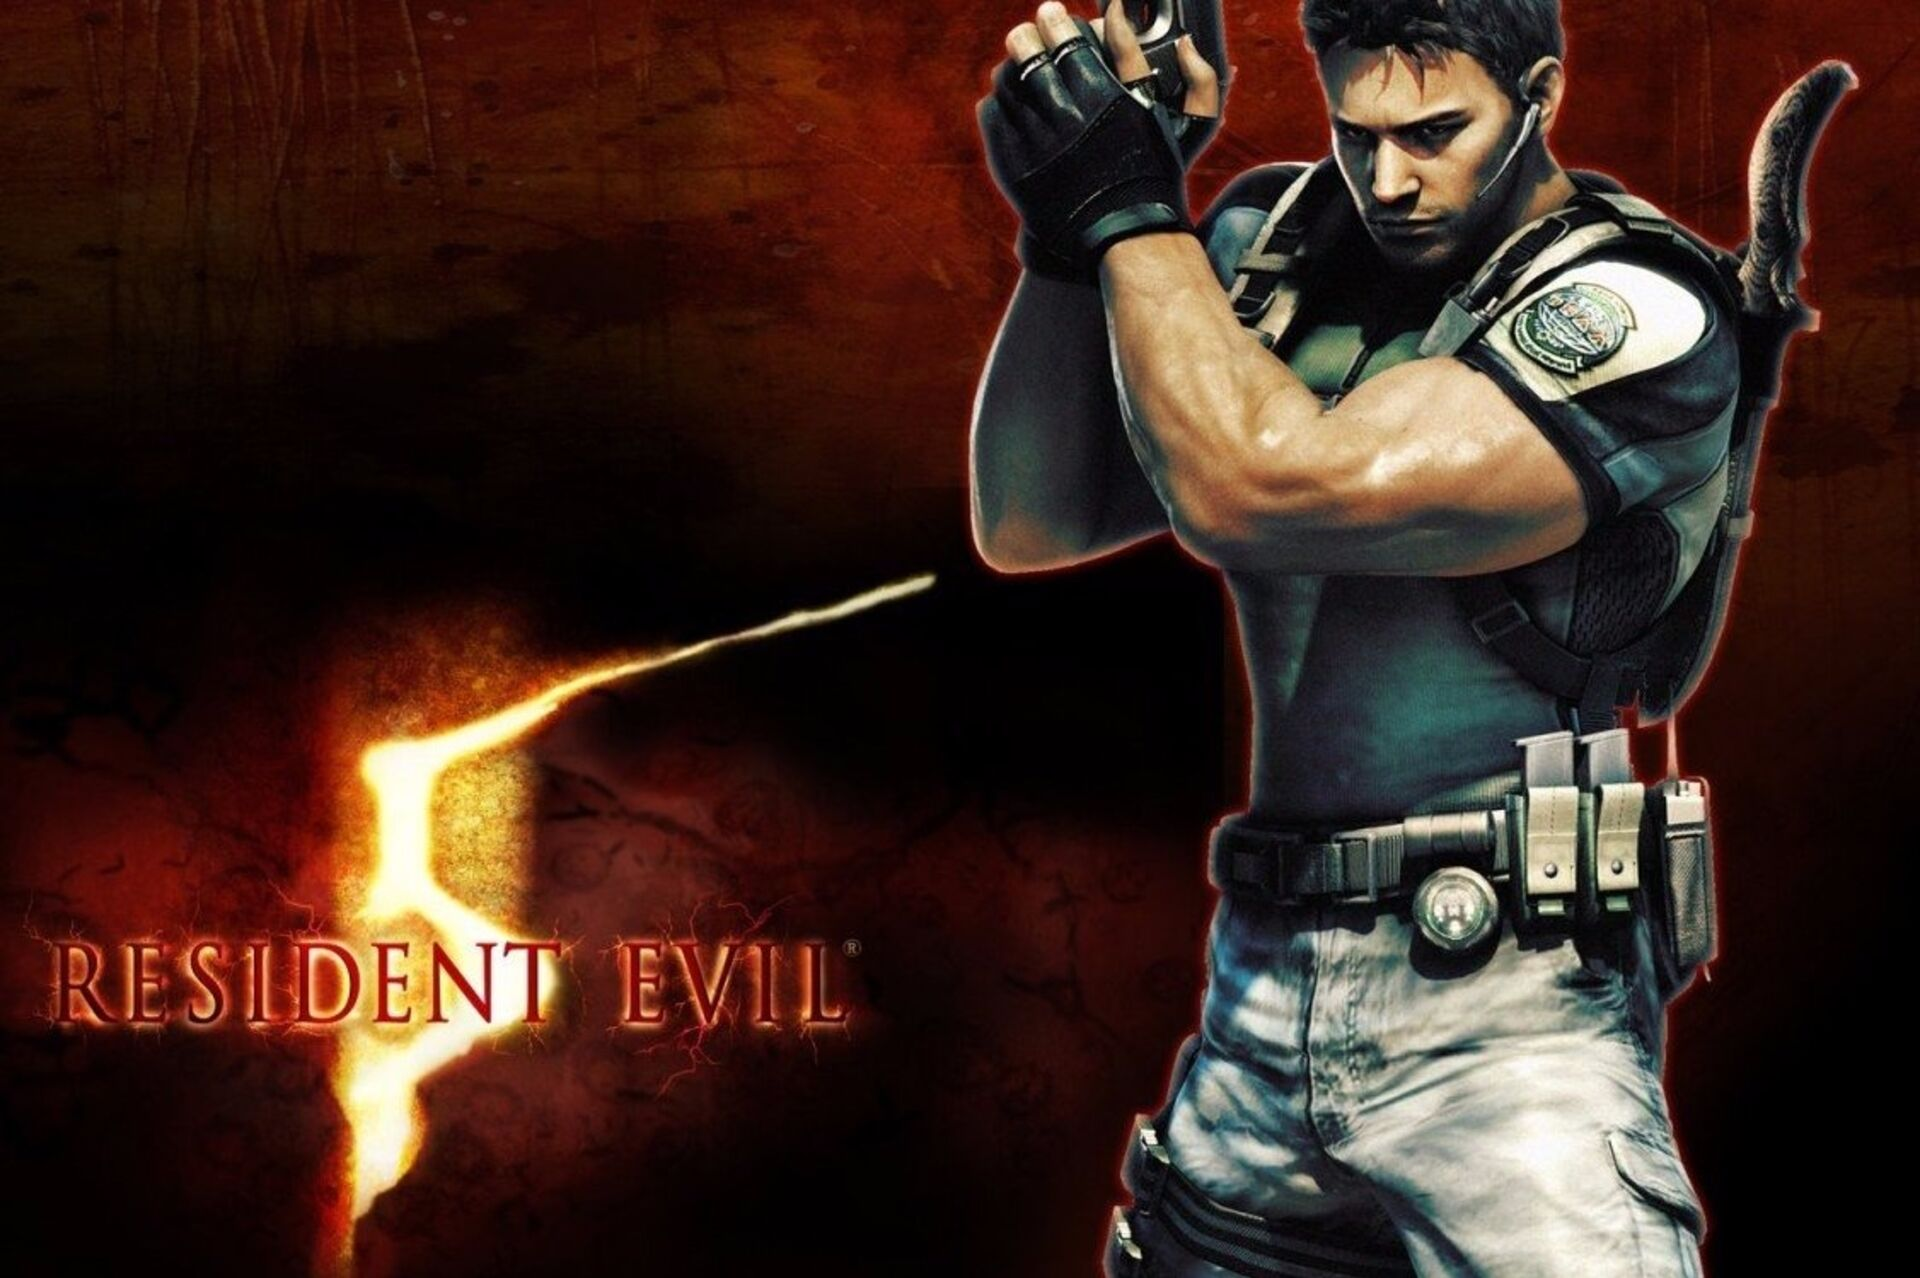 Things fall apart: Looking back at Resident Evil 5